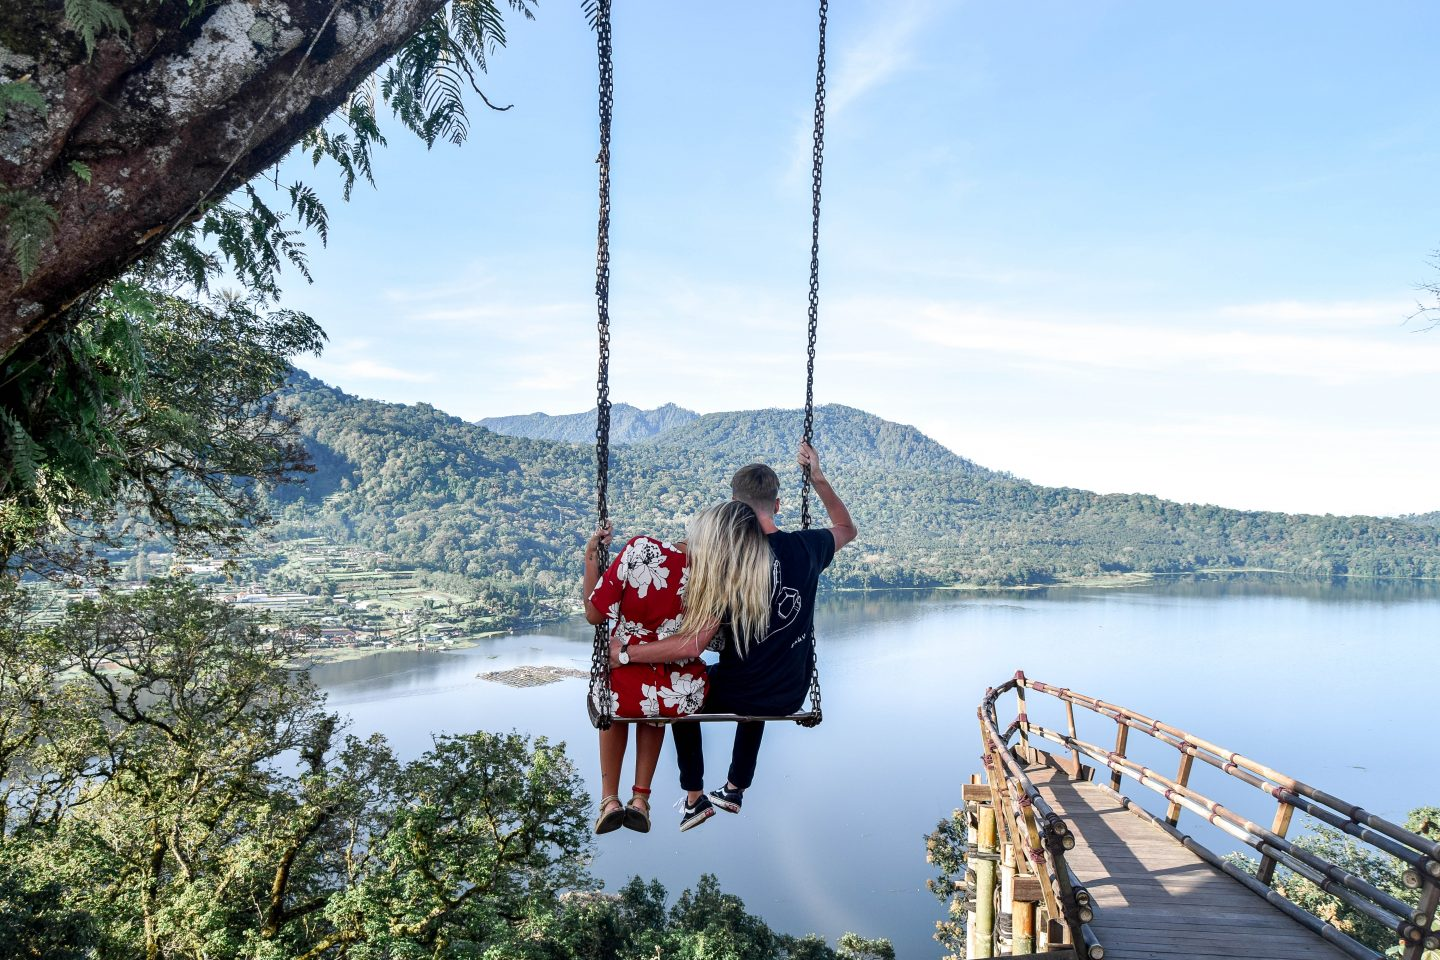 Wanagiri Hidden Hills The Famous Bali Swing Wanderers Warriors